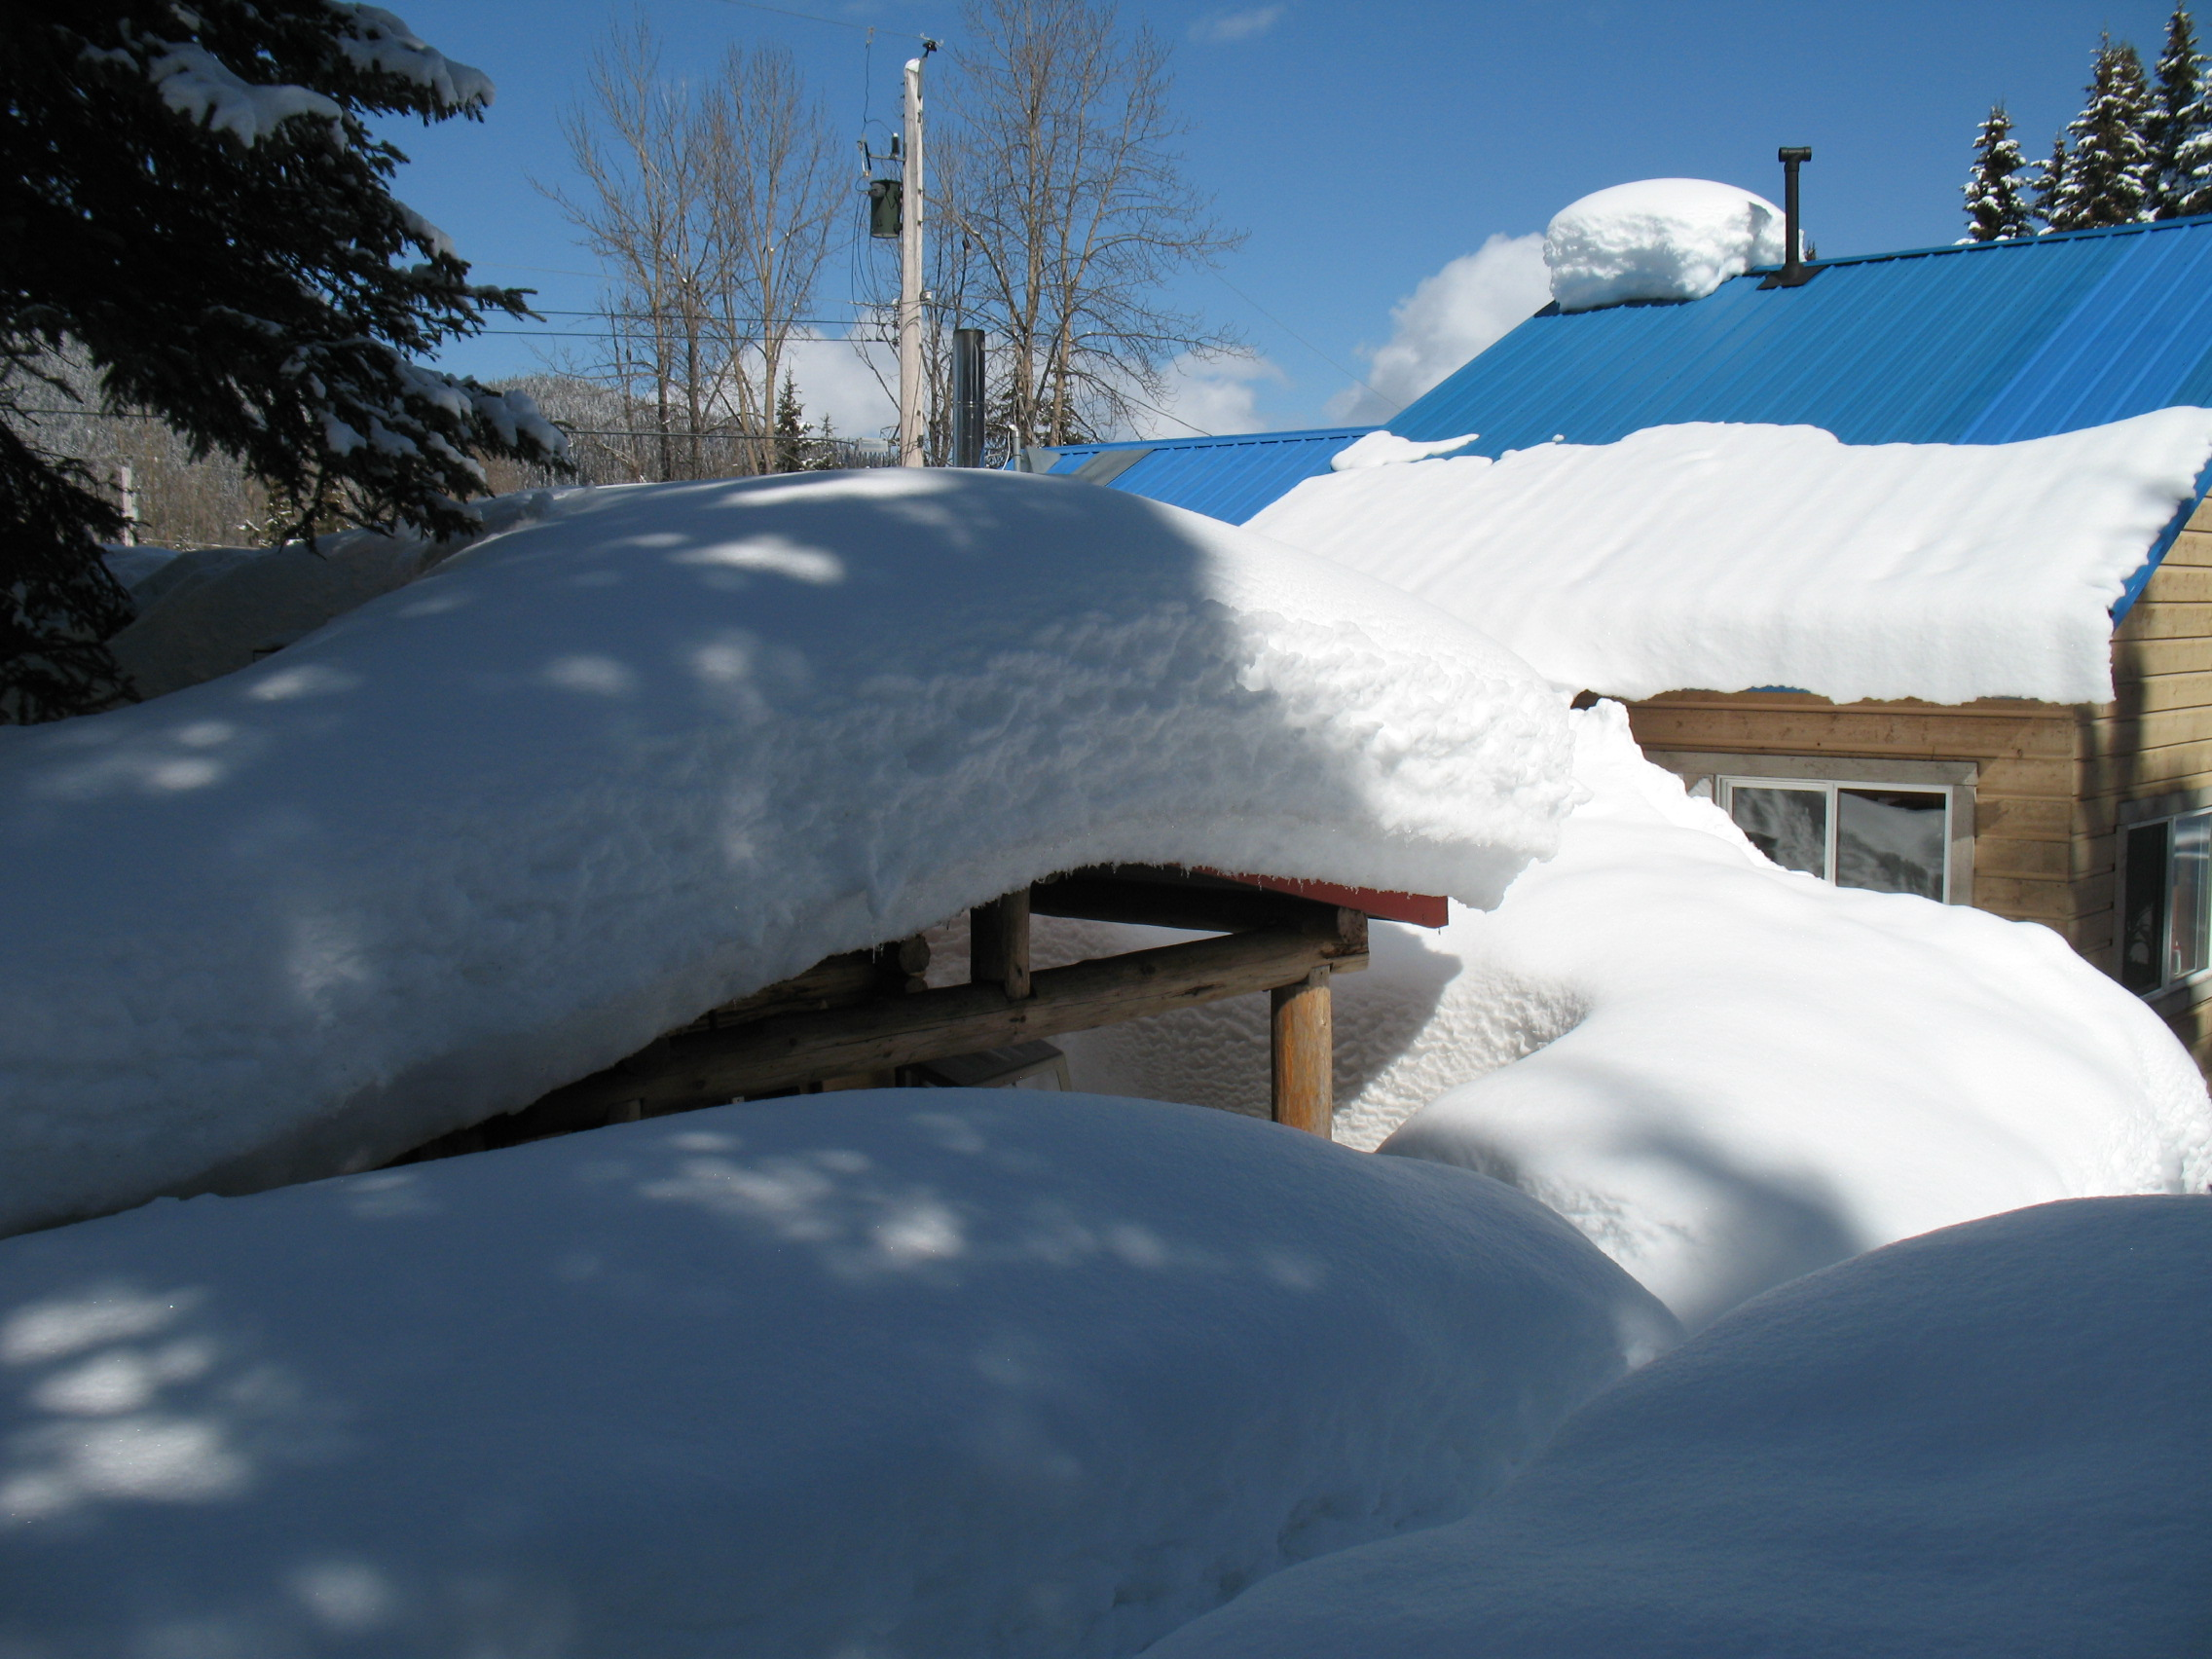 The view of the snowbank that covers the back of the clinic/sauna/cob oven shack.